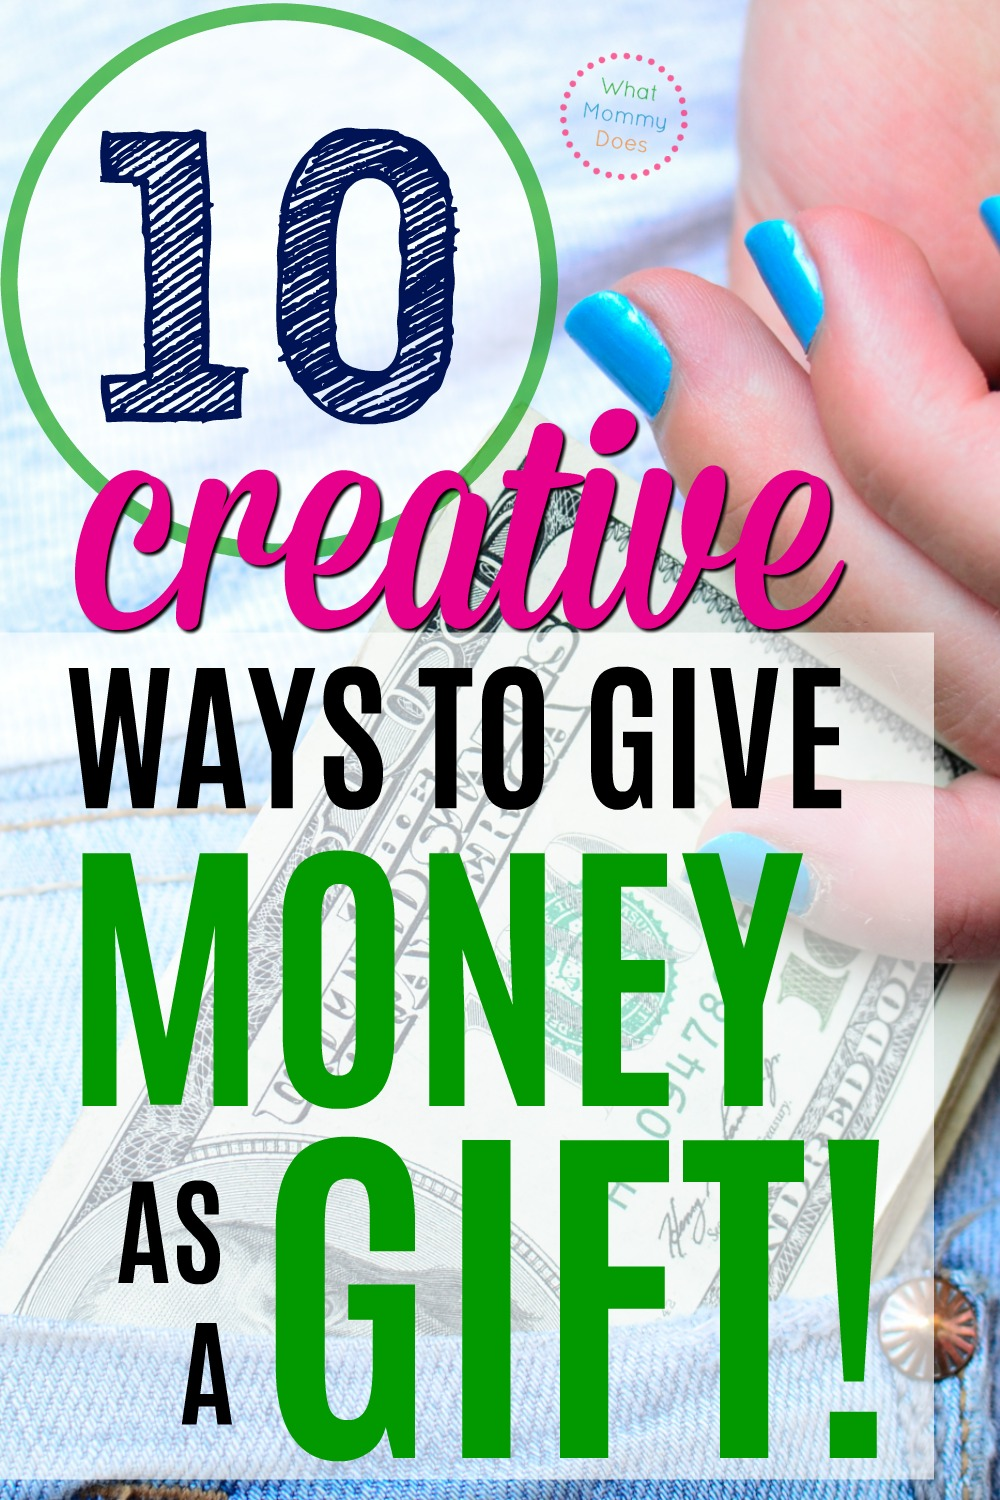 10 Creative Ways to Give Gifts Cards + Cash as Gifts ...